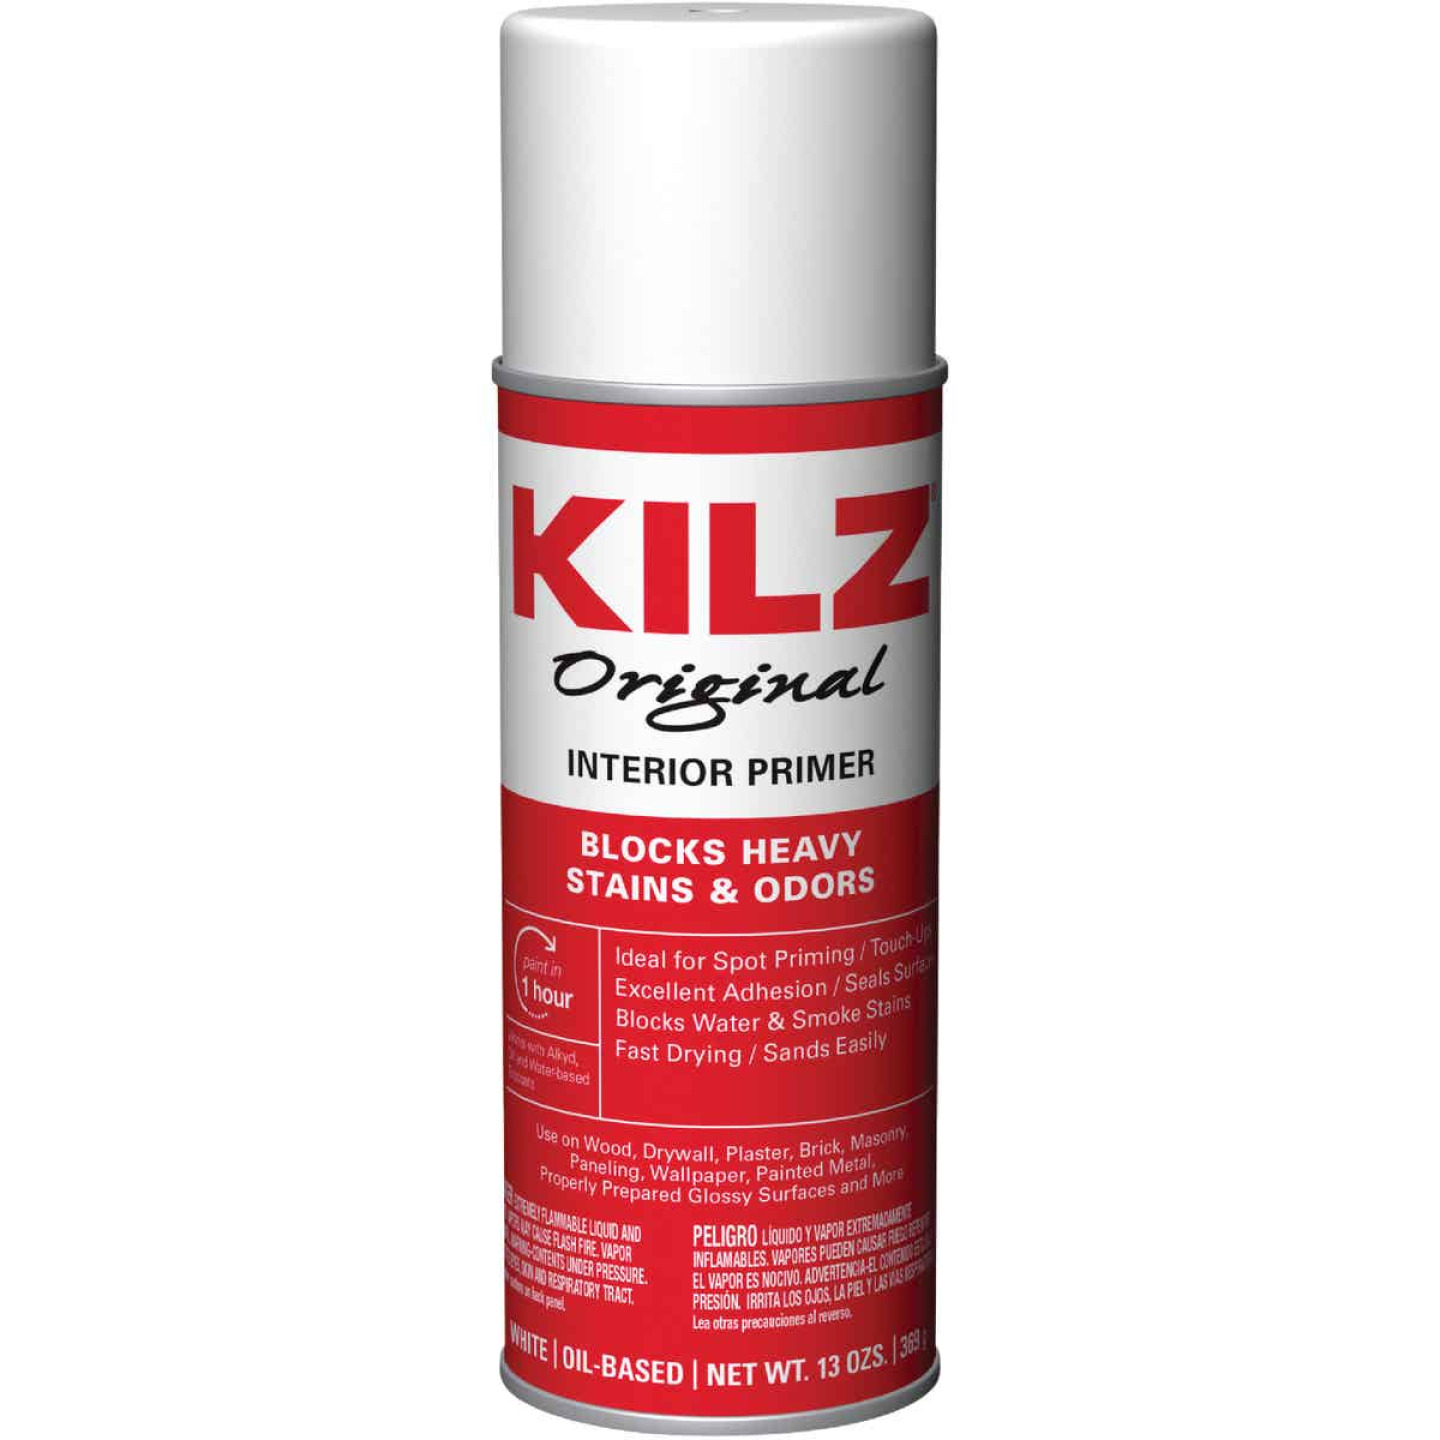 Kilz Original 13 Oz. Primer Sealer Stainblocker Spray, White Image 1